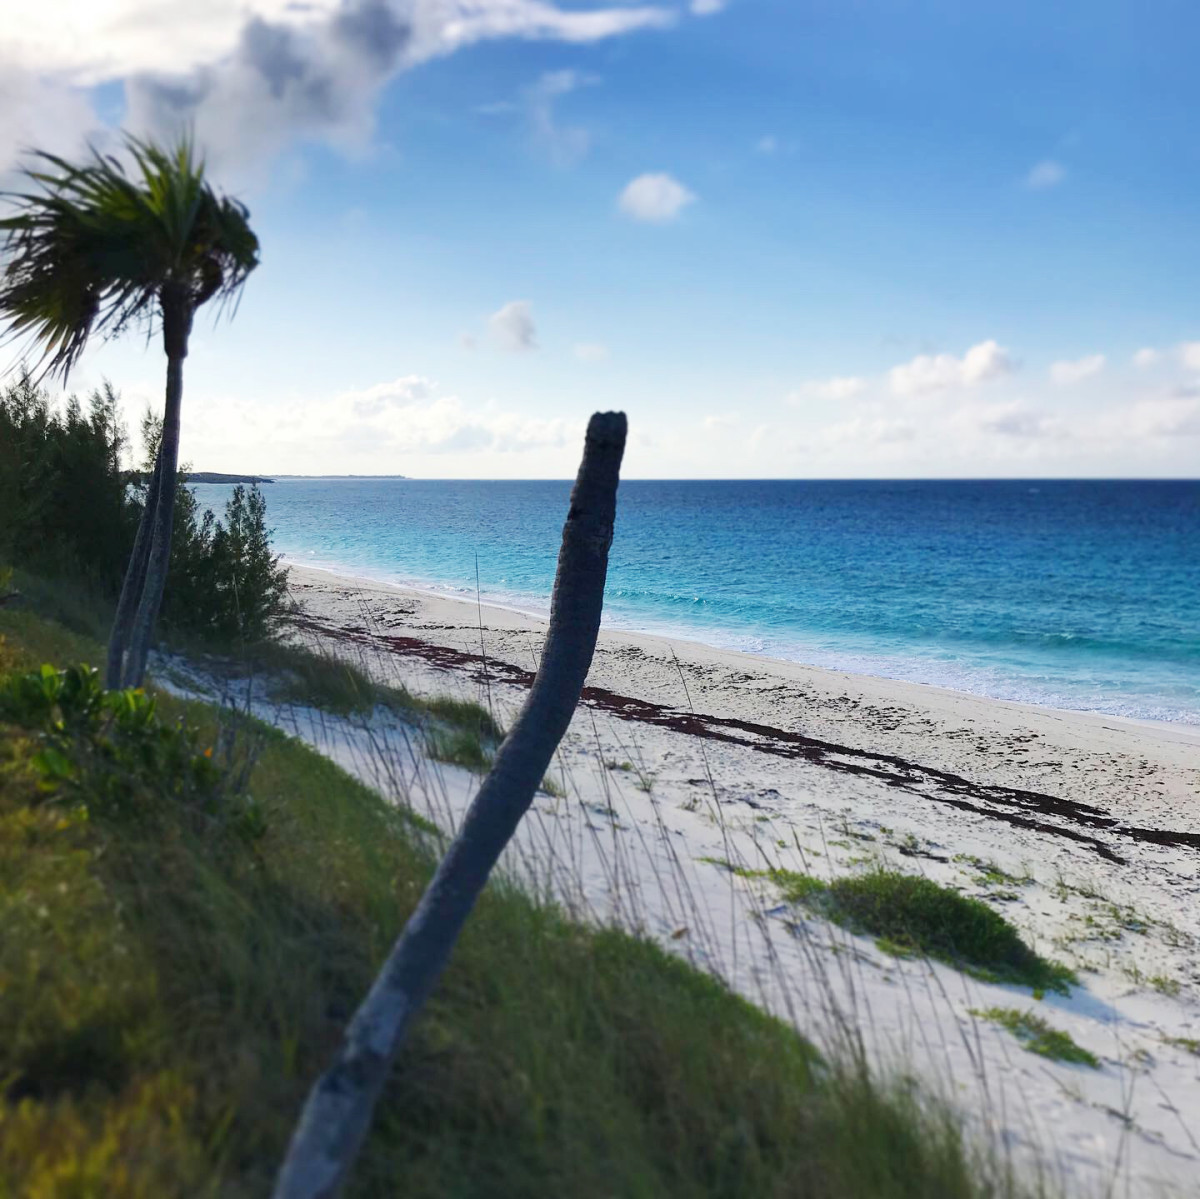 The windward side of Great Guana Cay.